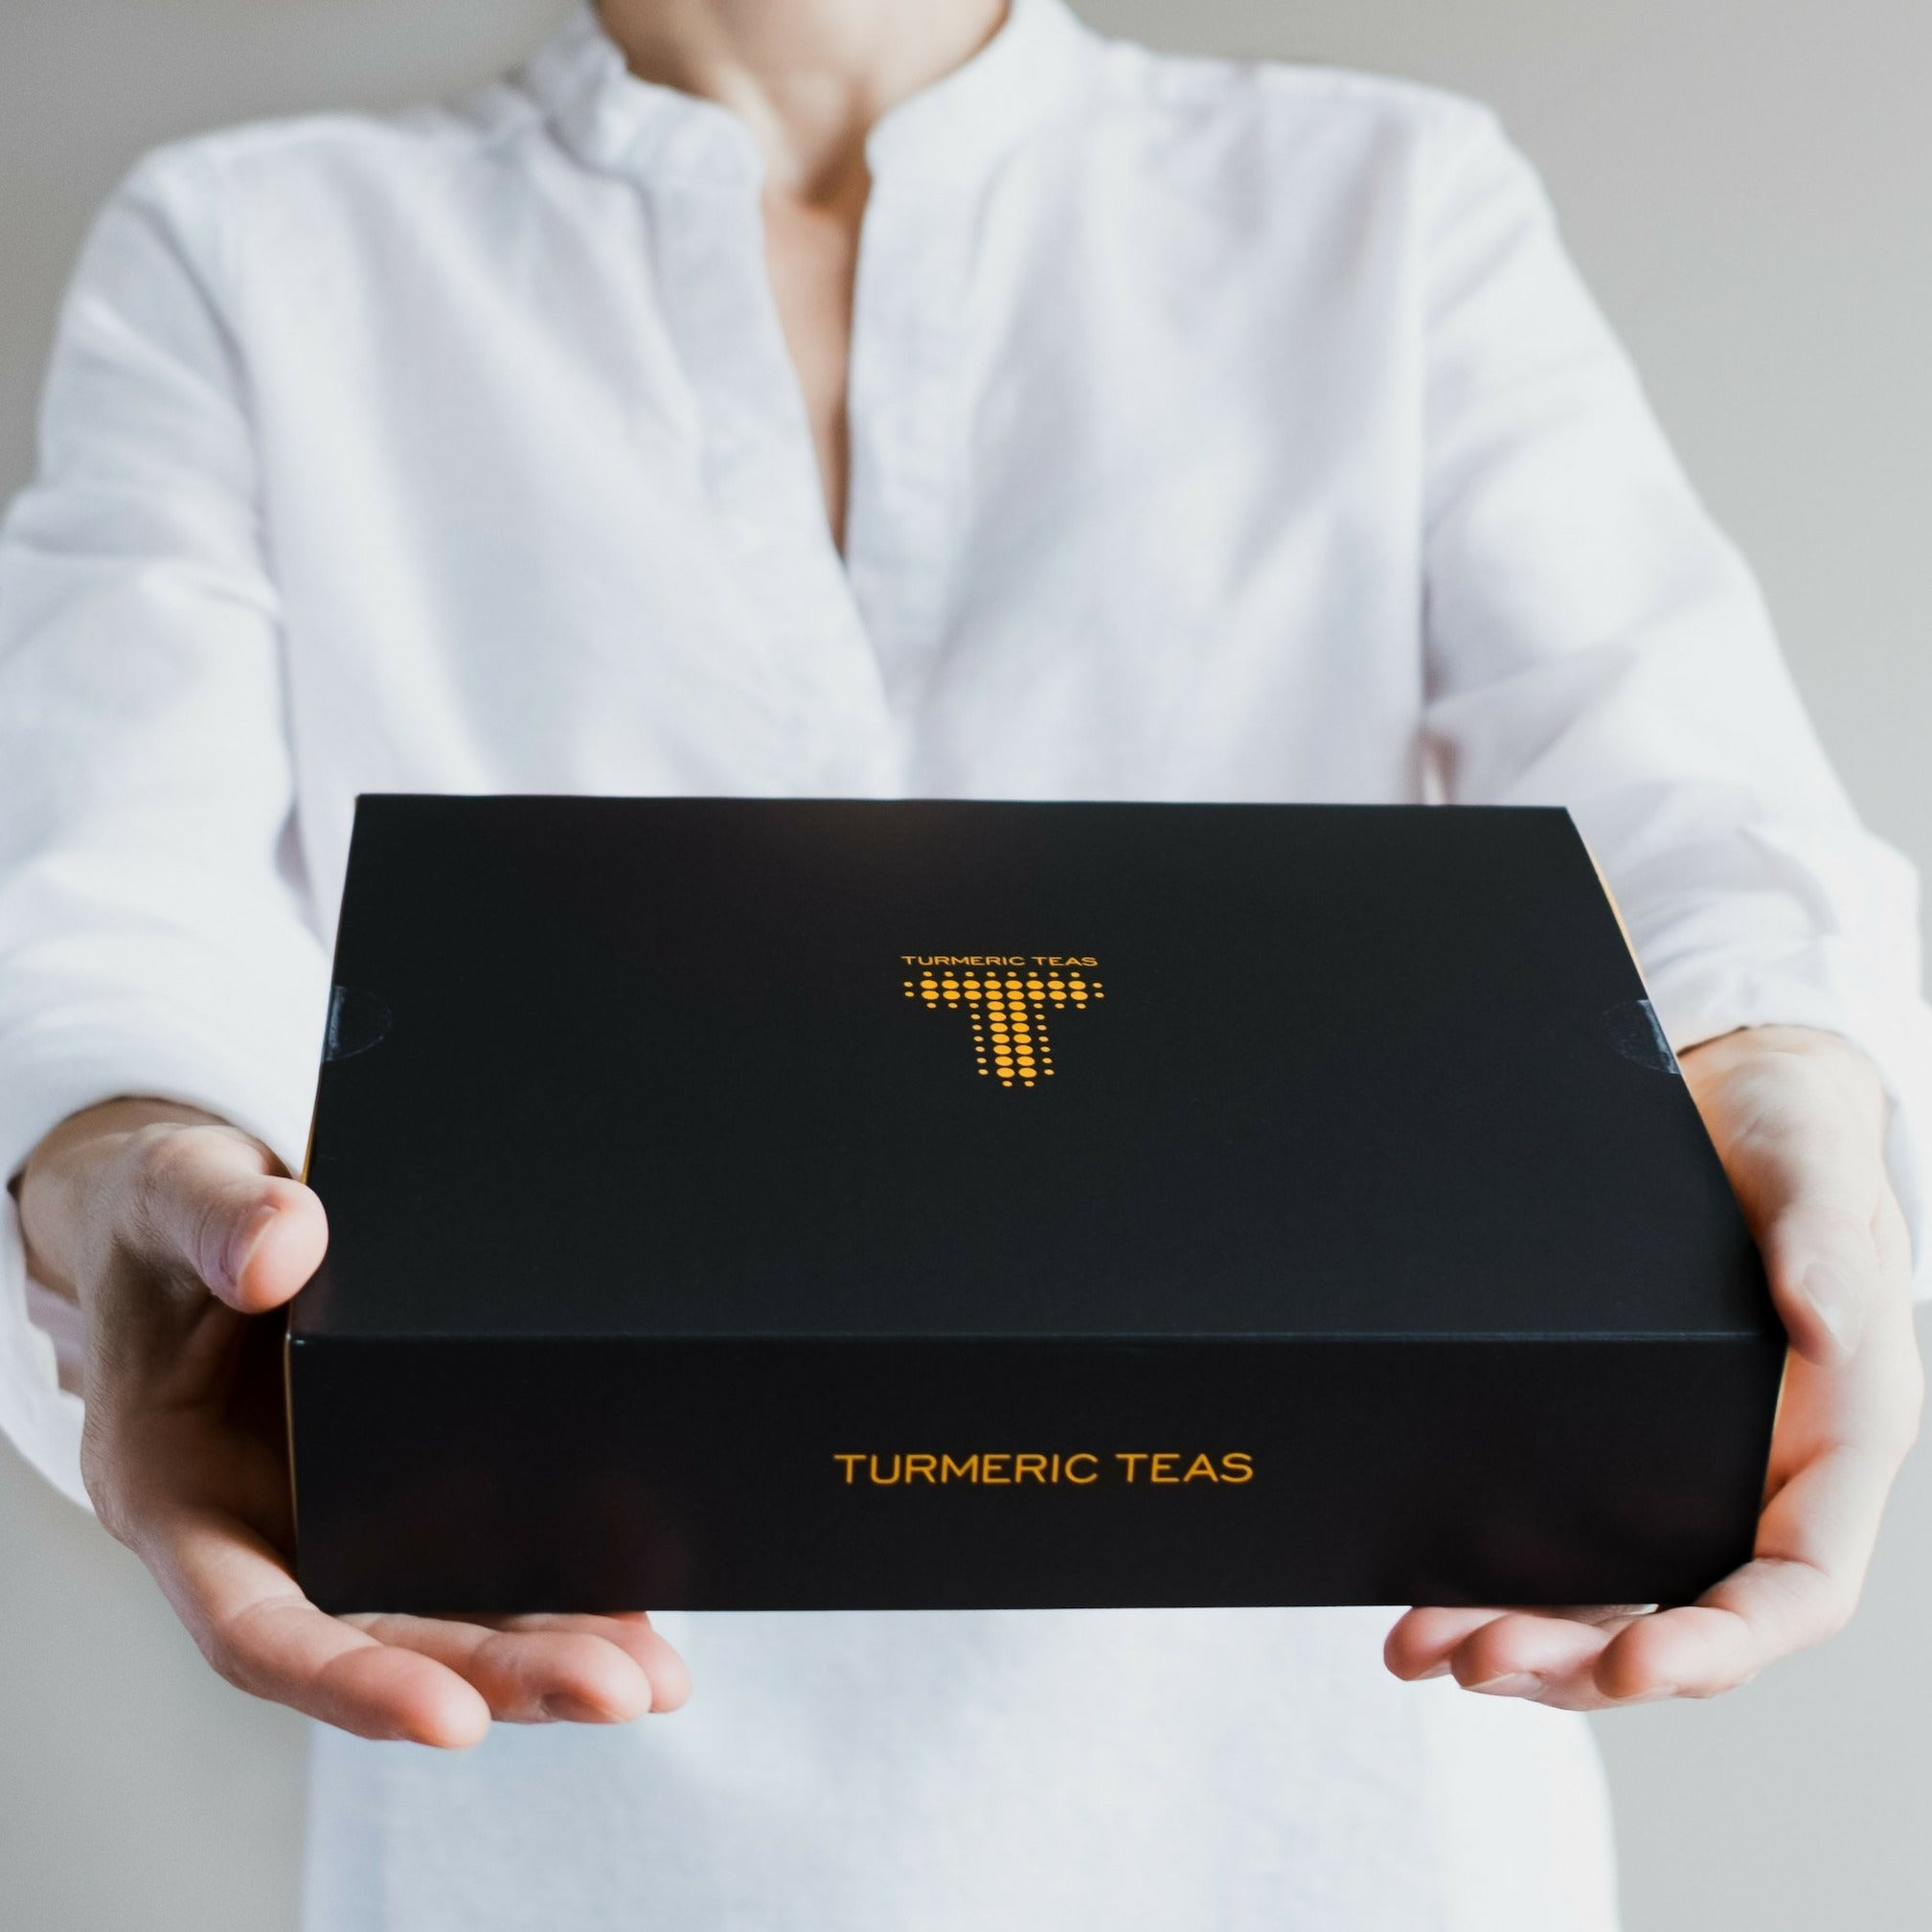 Turmeric Teas GIFT BOX - The Gift of Balance | Our complete loose-leaf collection of teas is available in an attractive gift box | Organic loose leaf turmeric tea